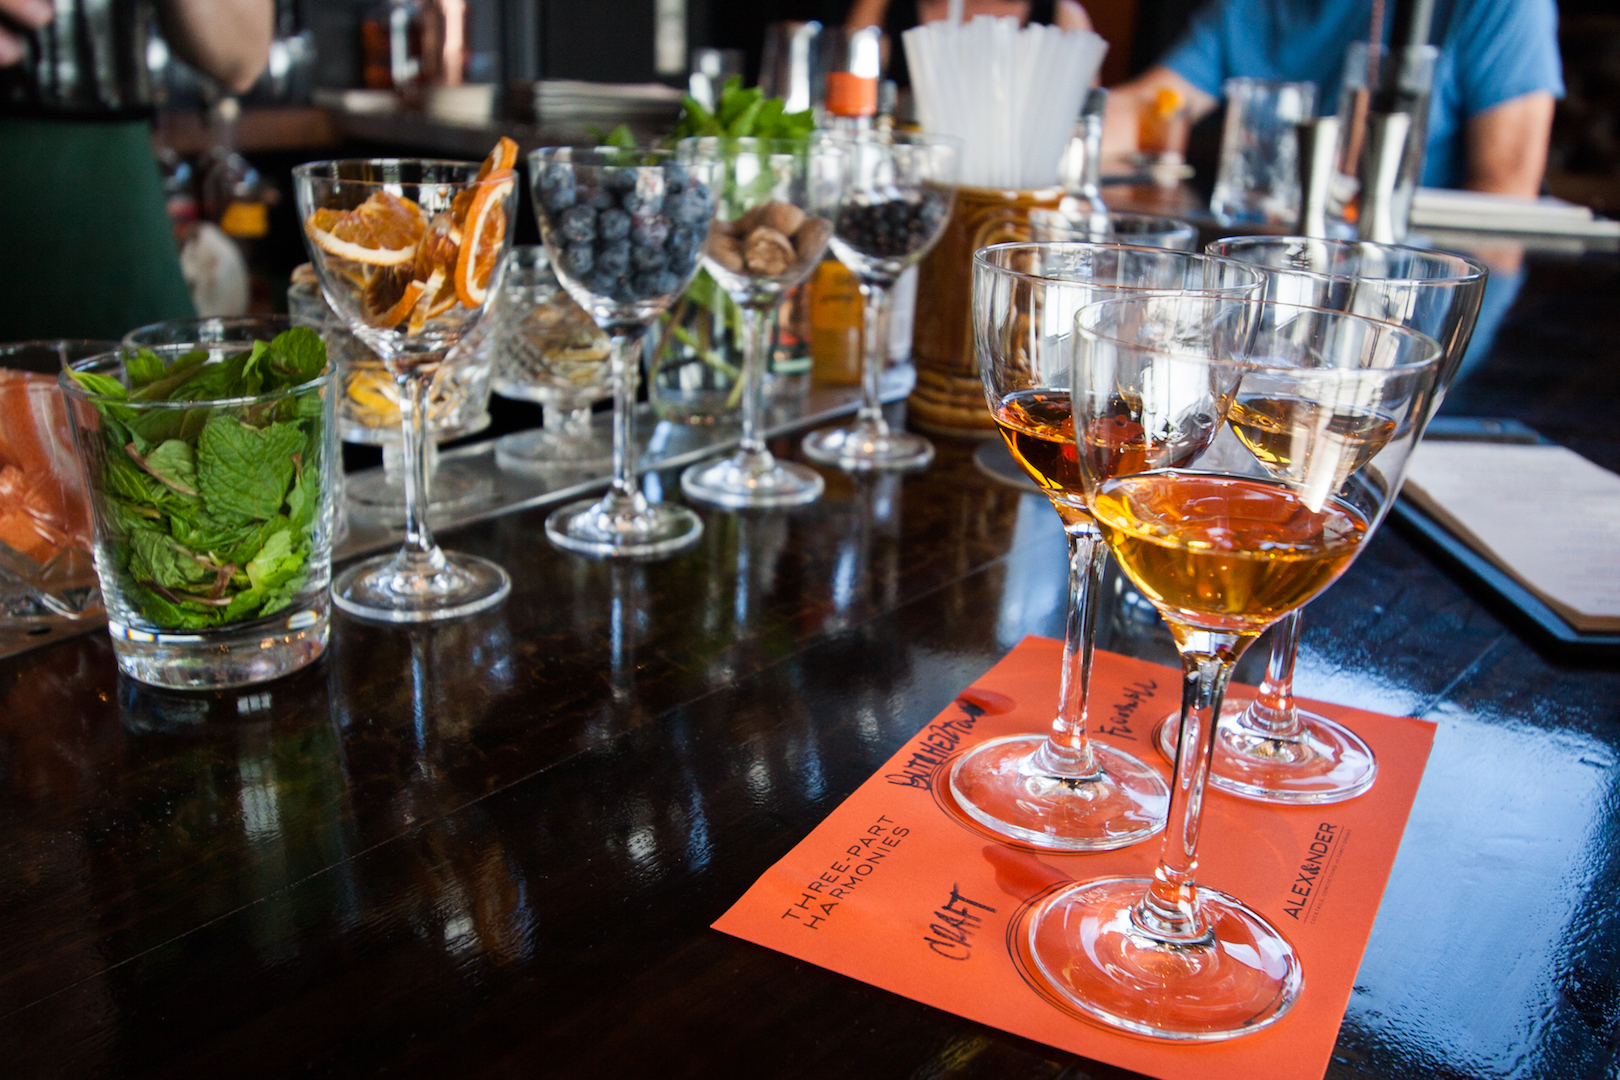 Copper & Kings Brandy Tasting